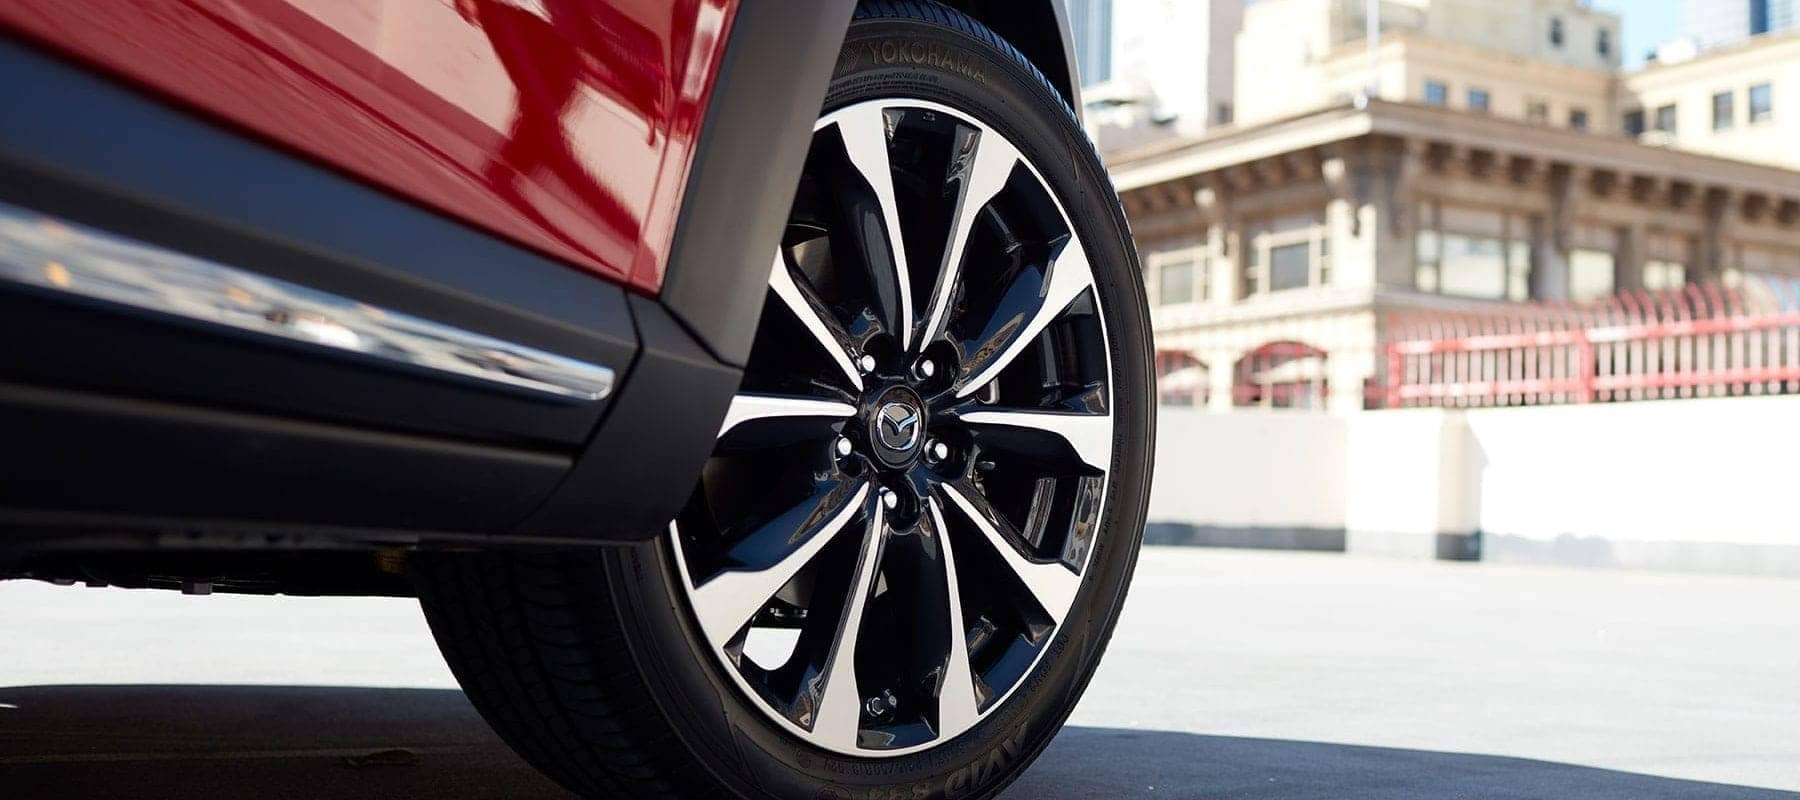 2019-mazda-cx-3-aluminum-alloy-wheels